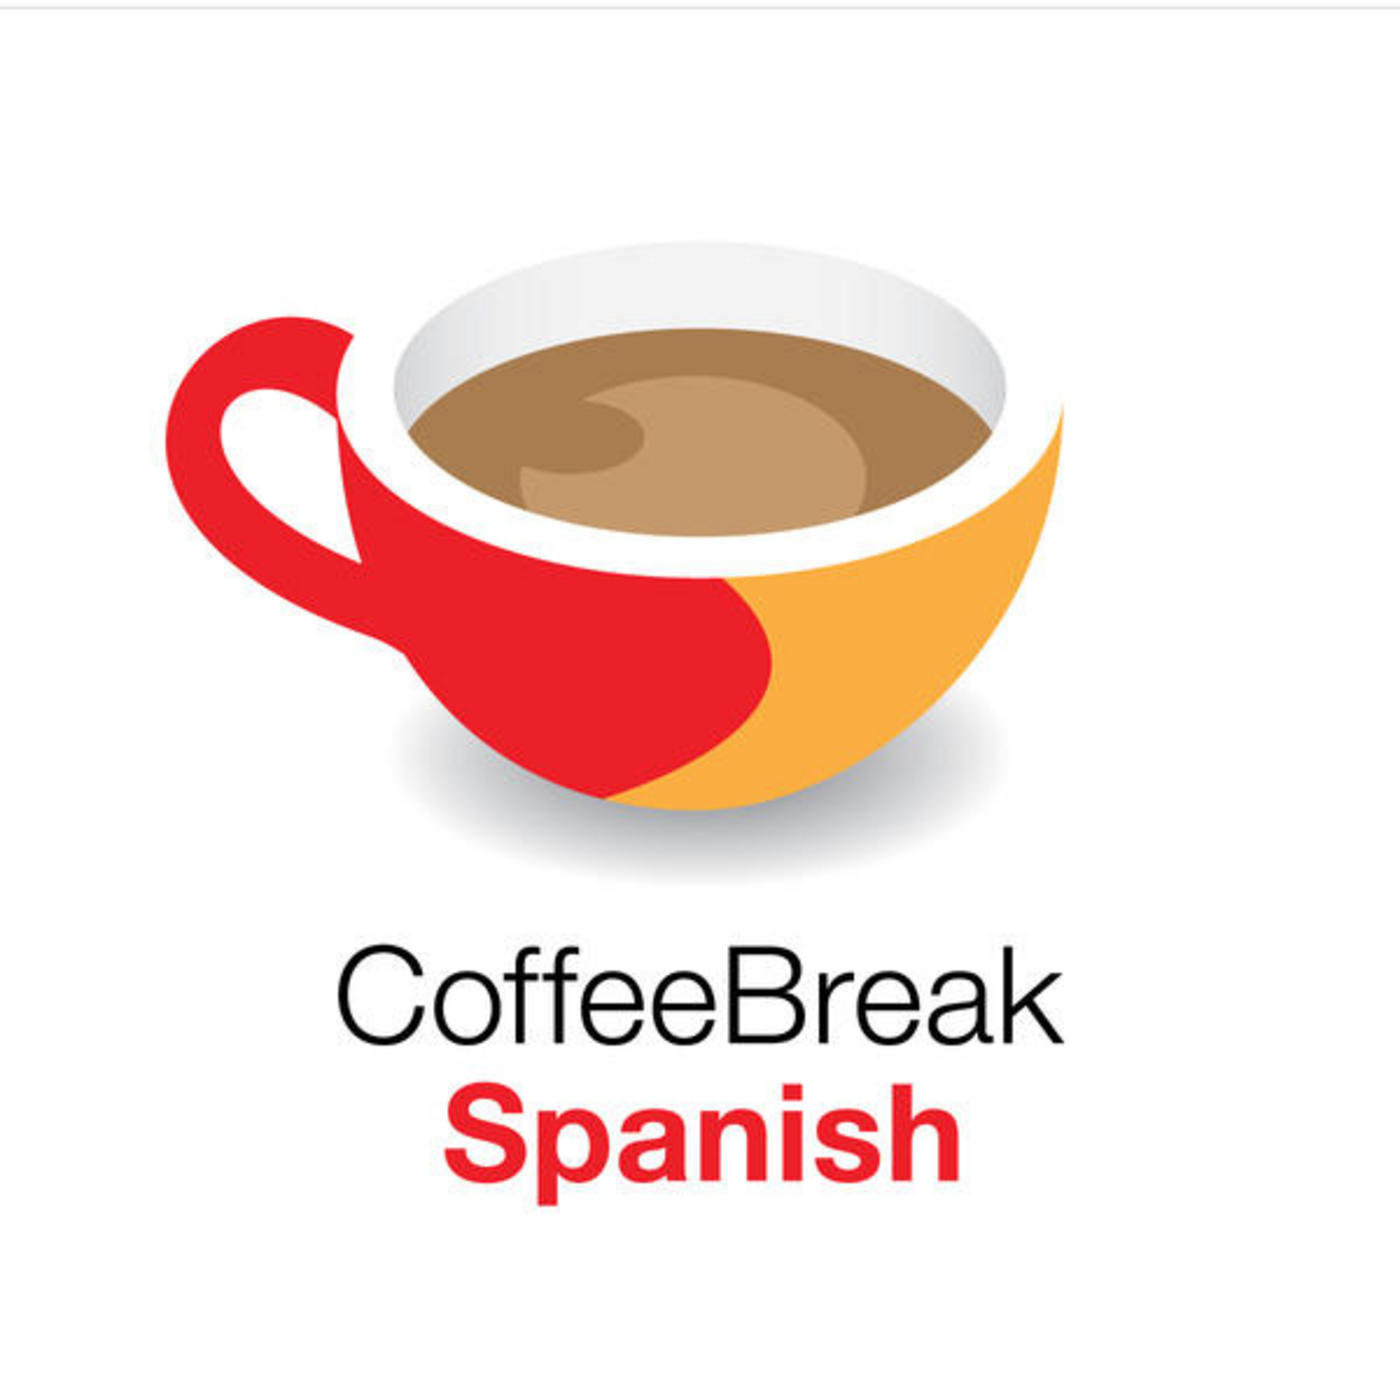 Episode 39 – Season 4 – Coffee Break Spanish